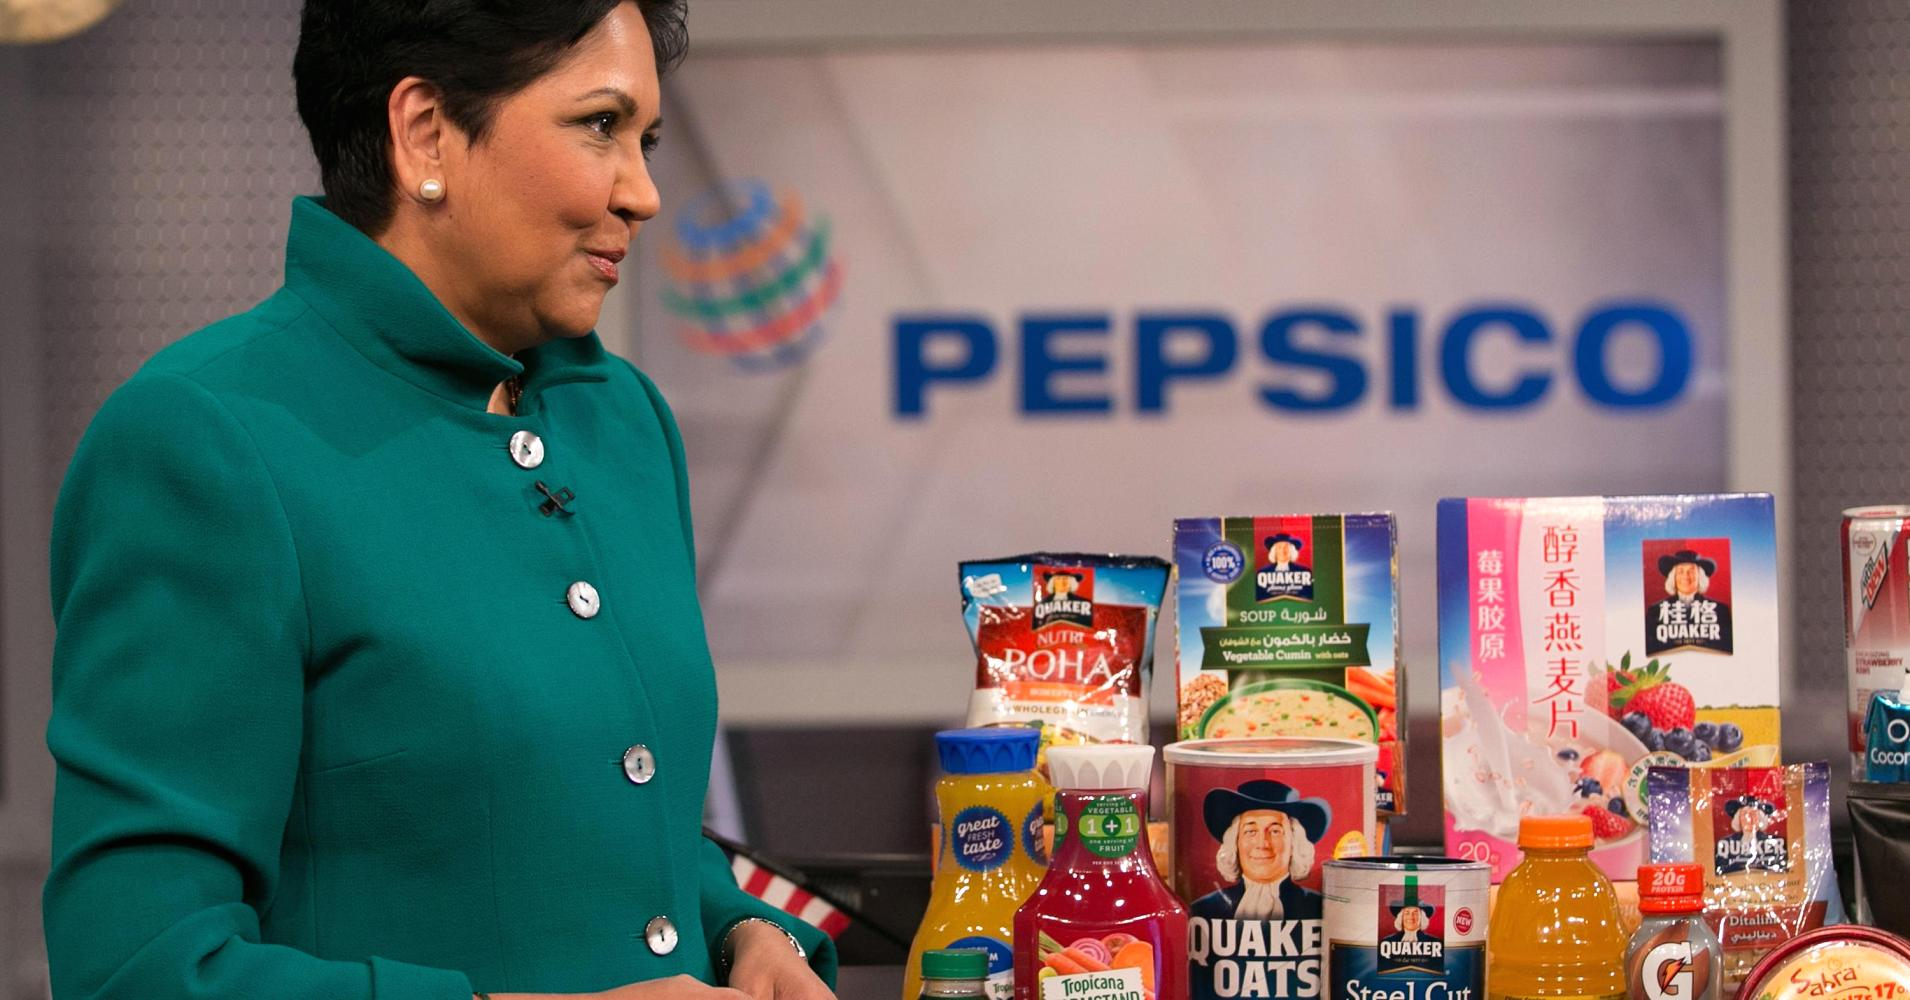 Pepsi To Buy Fruit And Vegetable Snack Maker Bare Foods For Less Than $200 Million, Source Says photo